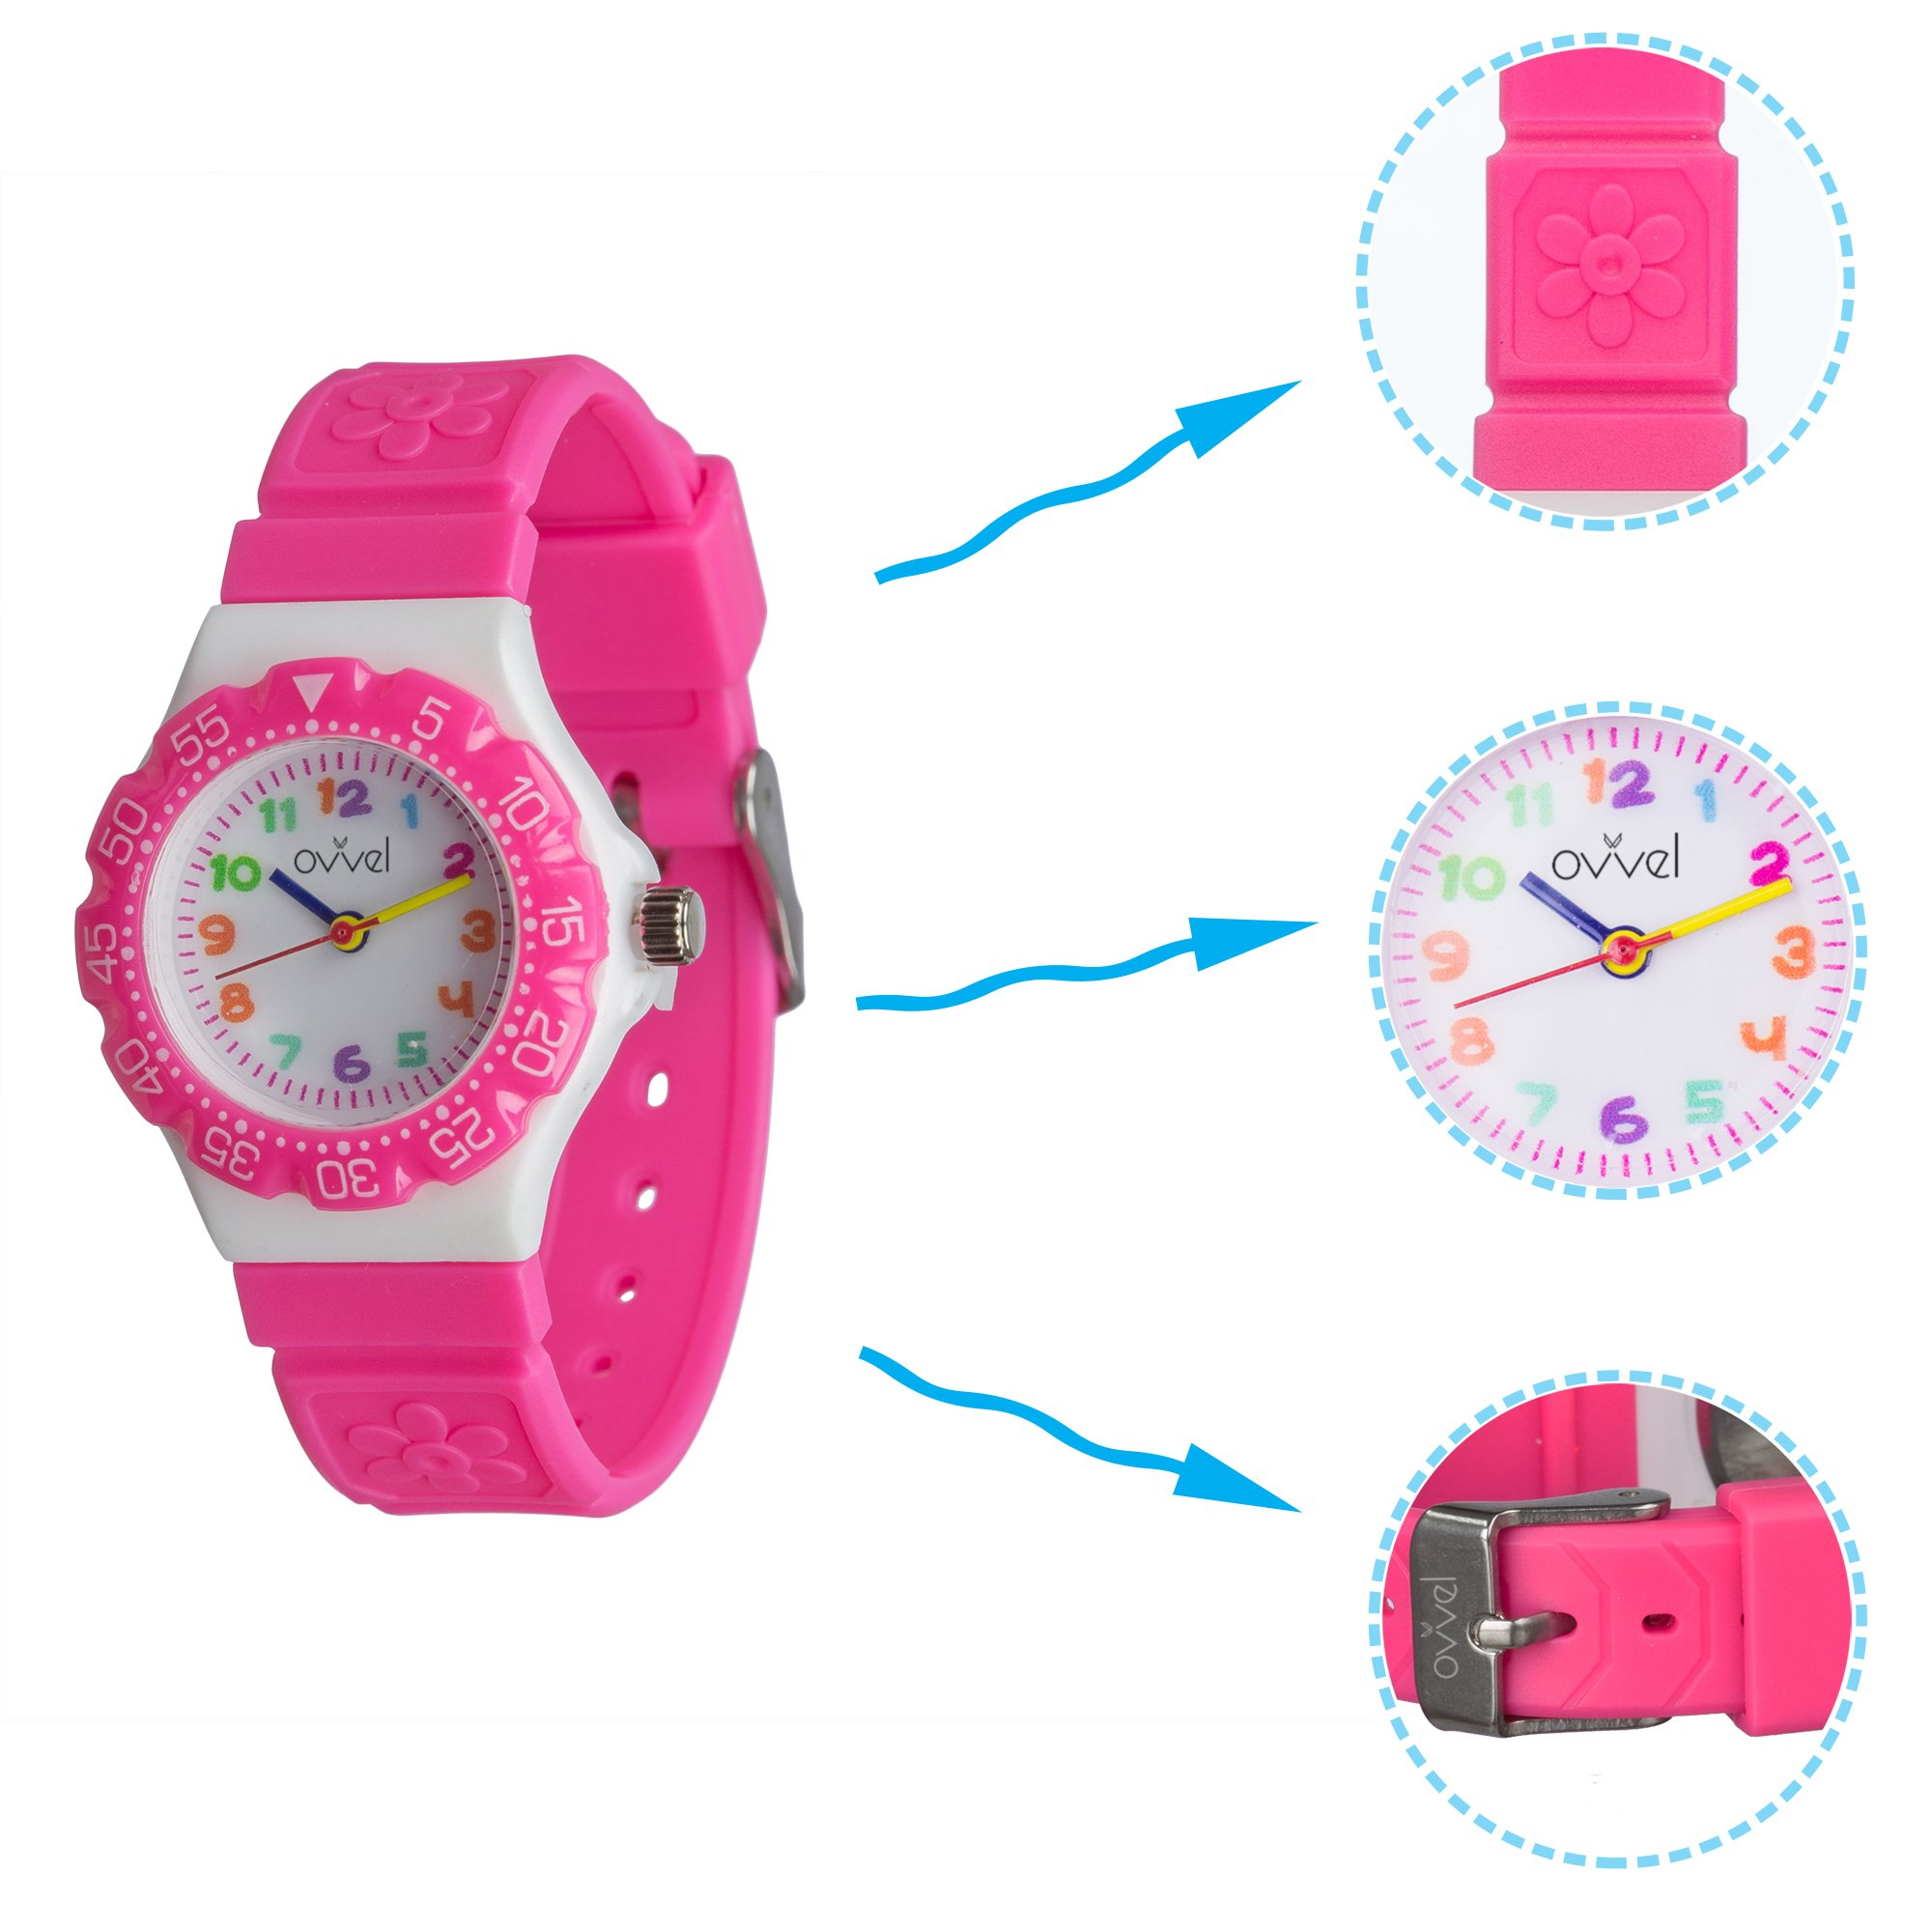 Ovvel Kids Watches, Wrist Watch for Little Girls, Beautiful & Adorable Time Teacher Watch, Innovative Easy–to–Read Design with Japanese Movement & Sony Battery, Gift for Little Girls - Pink by Ovvel (Image #3)